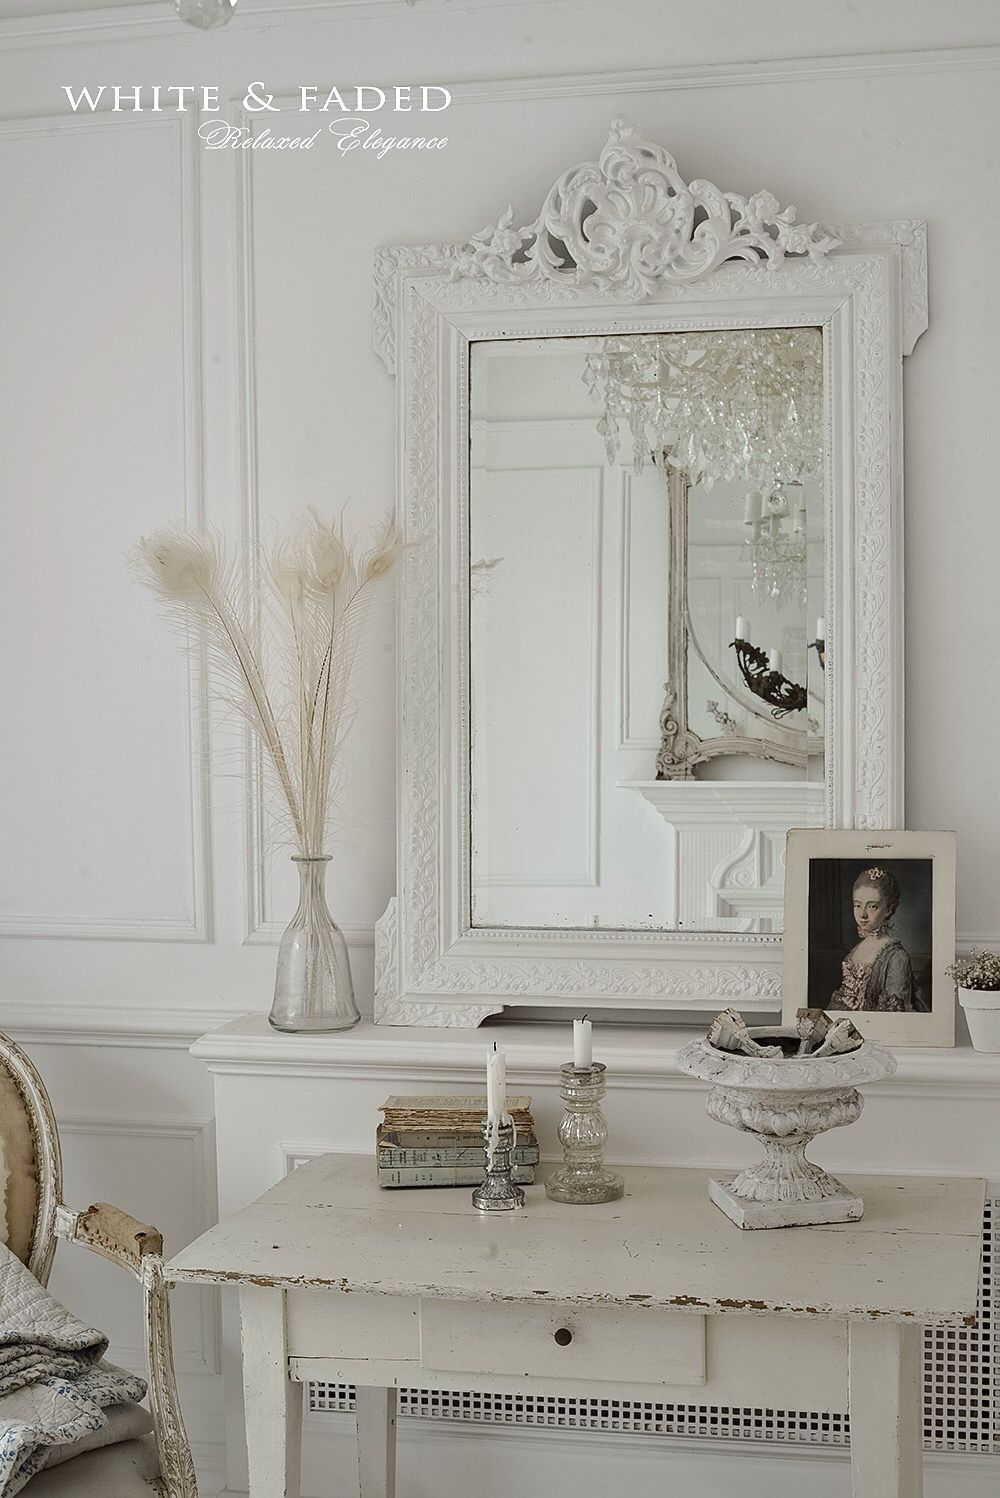 Pin By Susan Greer On White Love In 2020 White Home Decor Decor